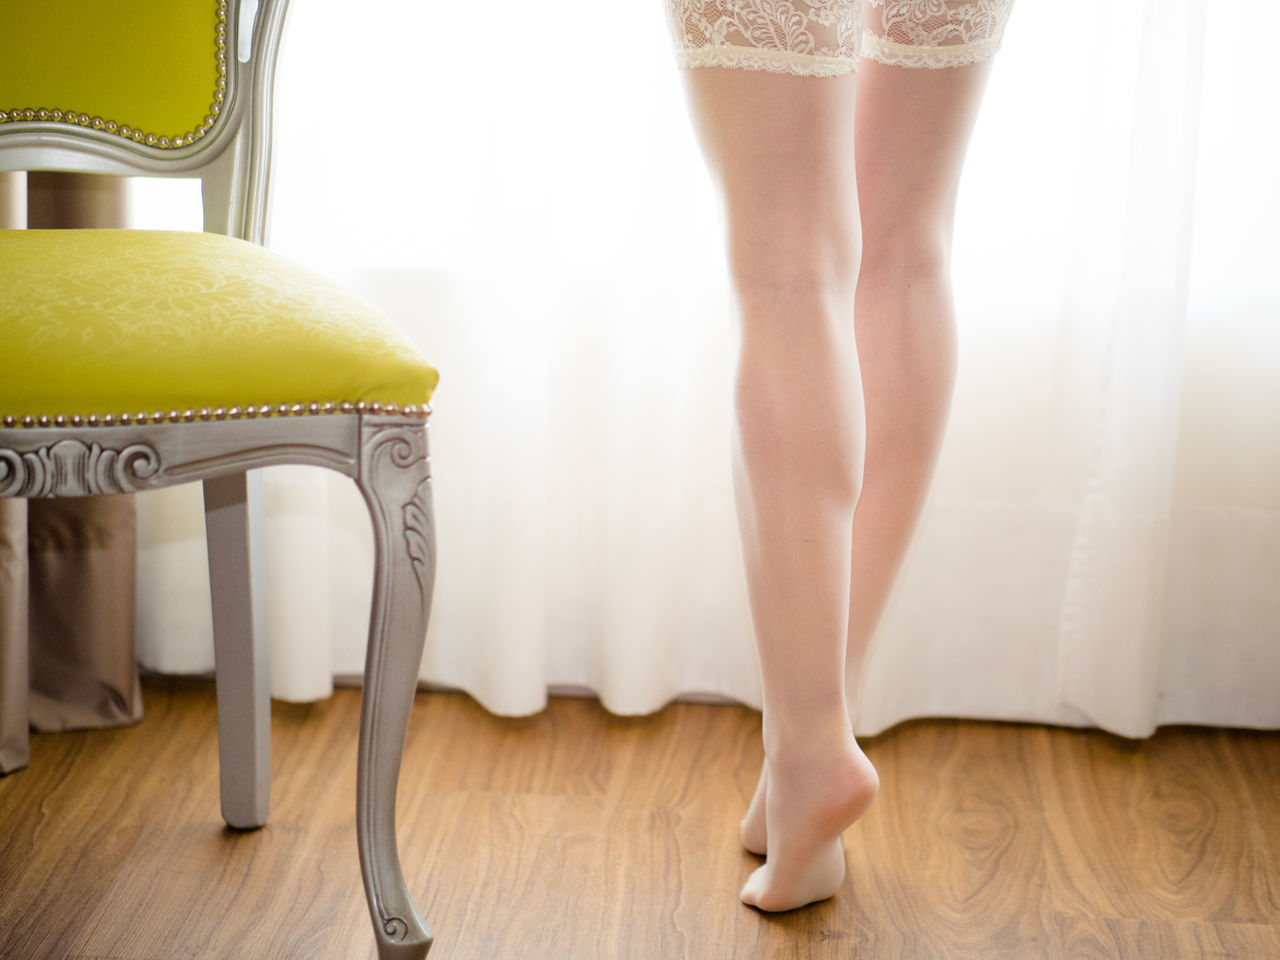 Woman wearing stockings in her bedroom Bedroom Close-up Day High Heels Human Body Part Human Leg Indoors  Legs Low Section One Person One Woman Only One Young Woman Only Only Women People Women Young Adult